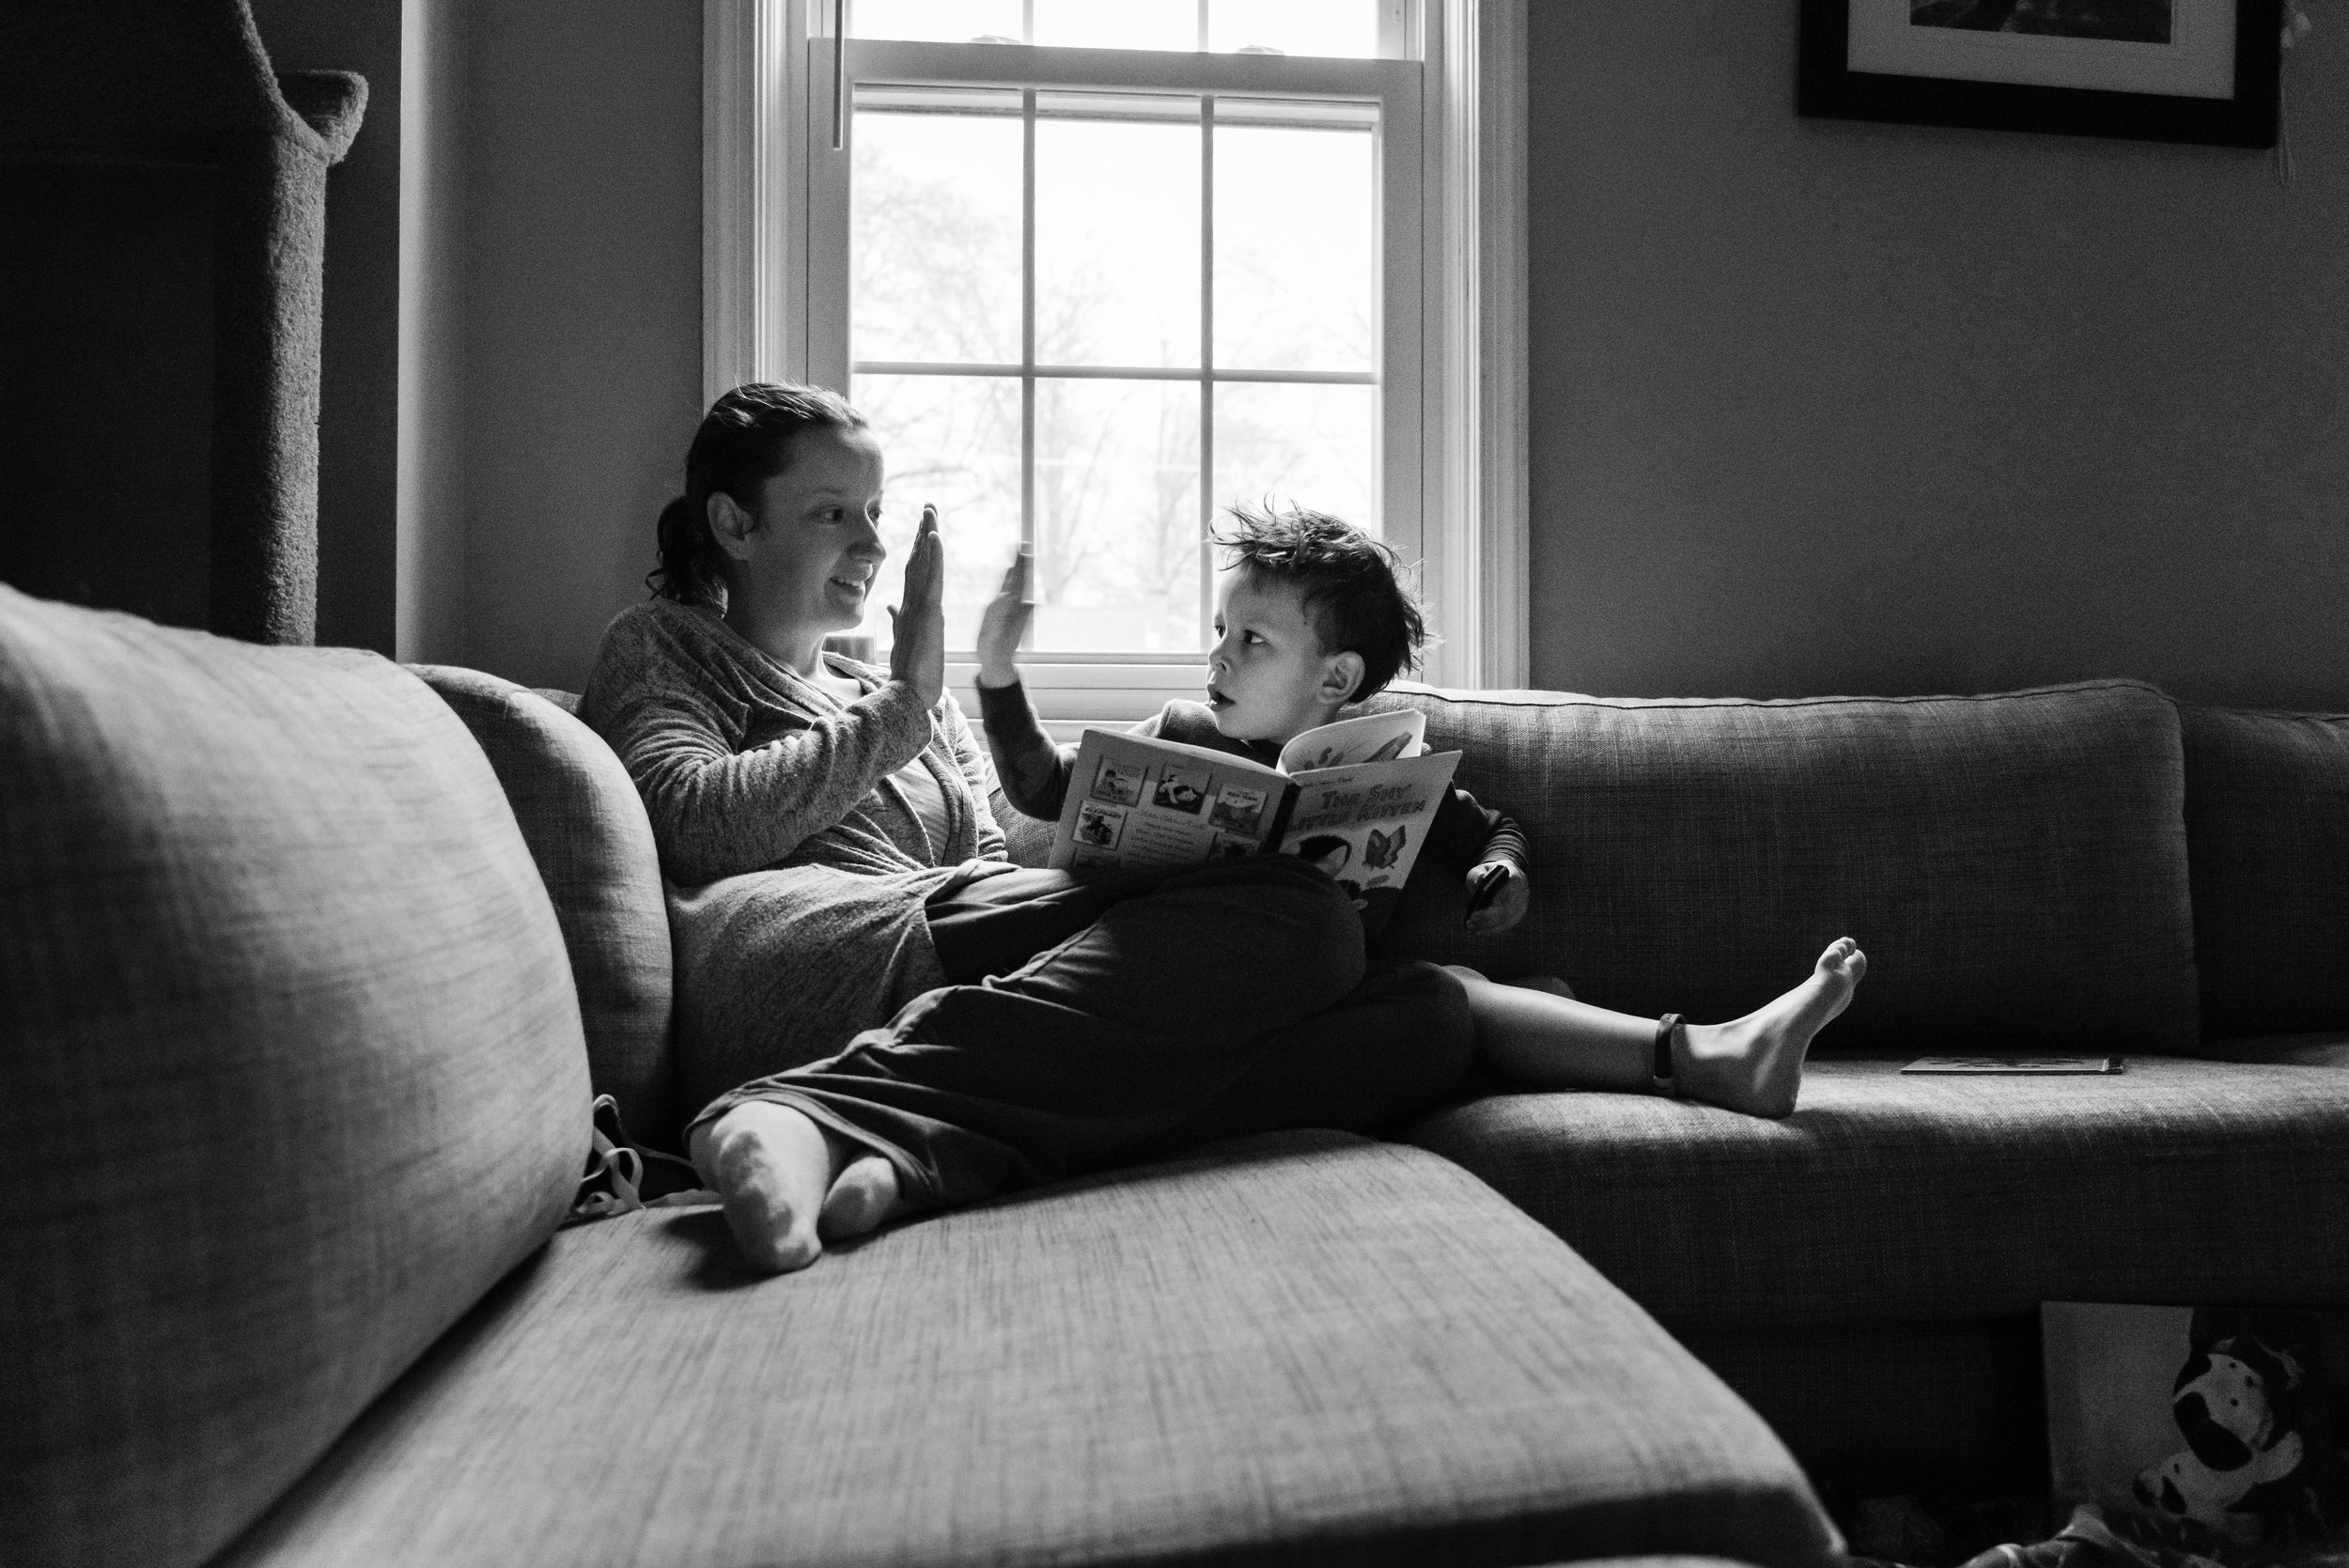 Mother and son self-portrait high-fives by Northern Virginia Family Photographer Nicole Sanchez